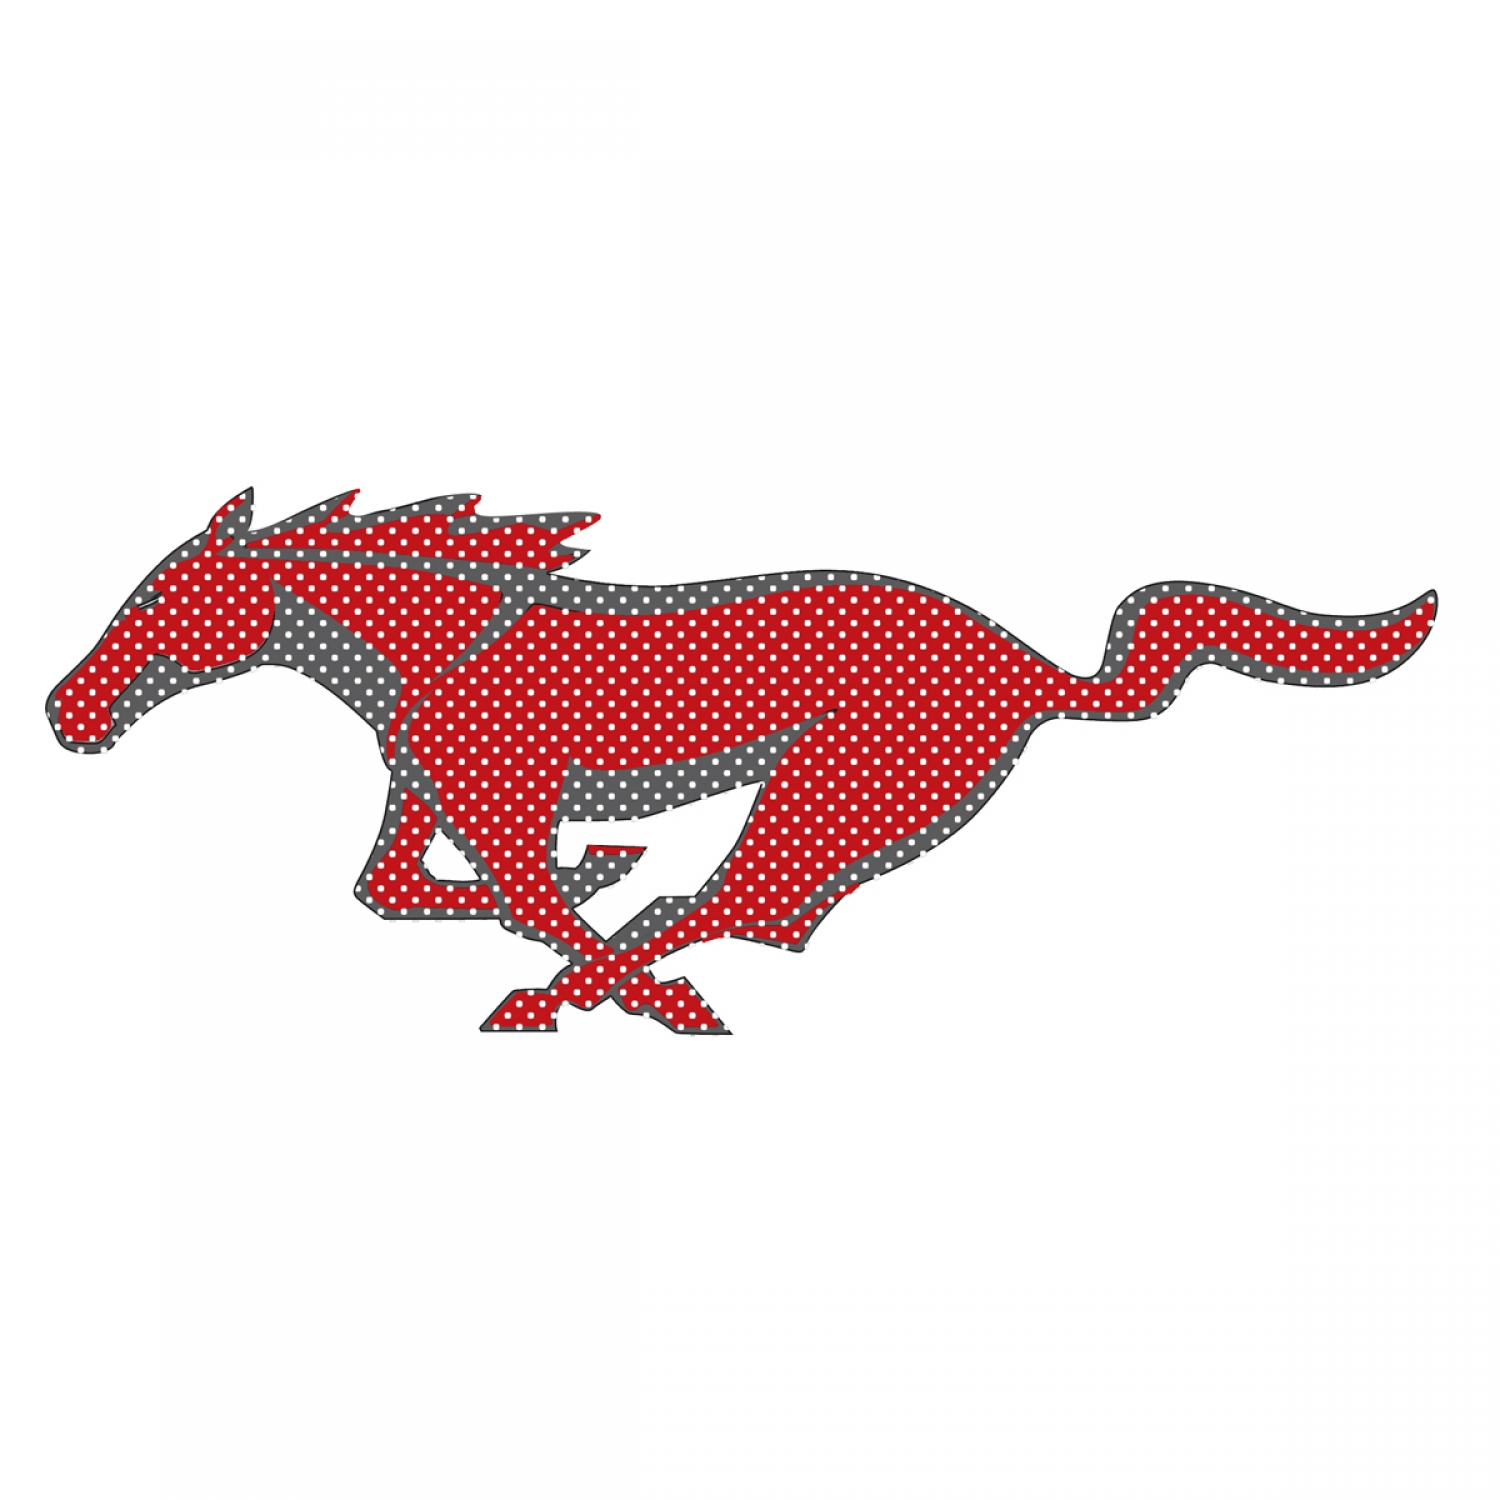 "Ford Mustang Pony in Red 12"" 3M Perforated Unobstructed View Window Graphic Decorative Decal"